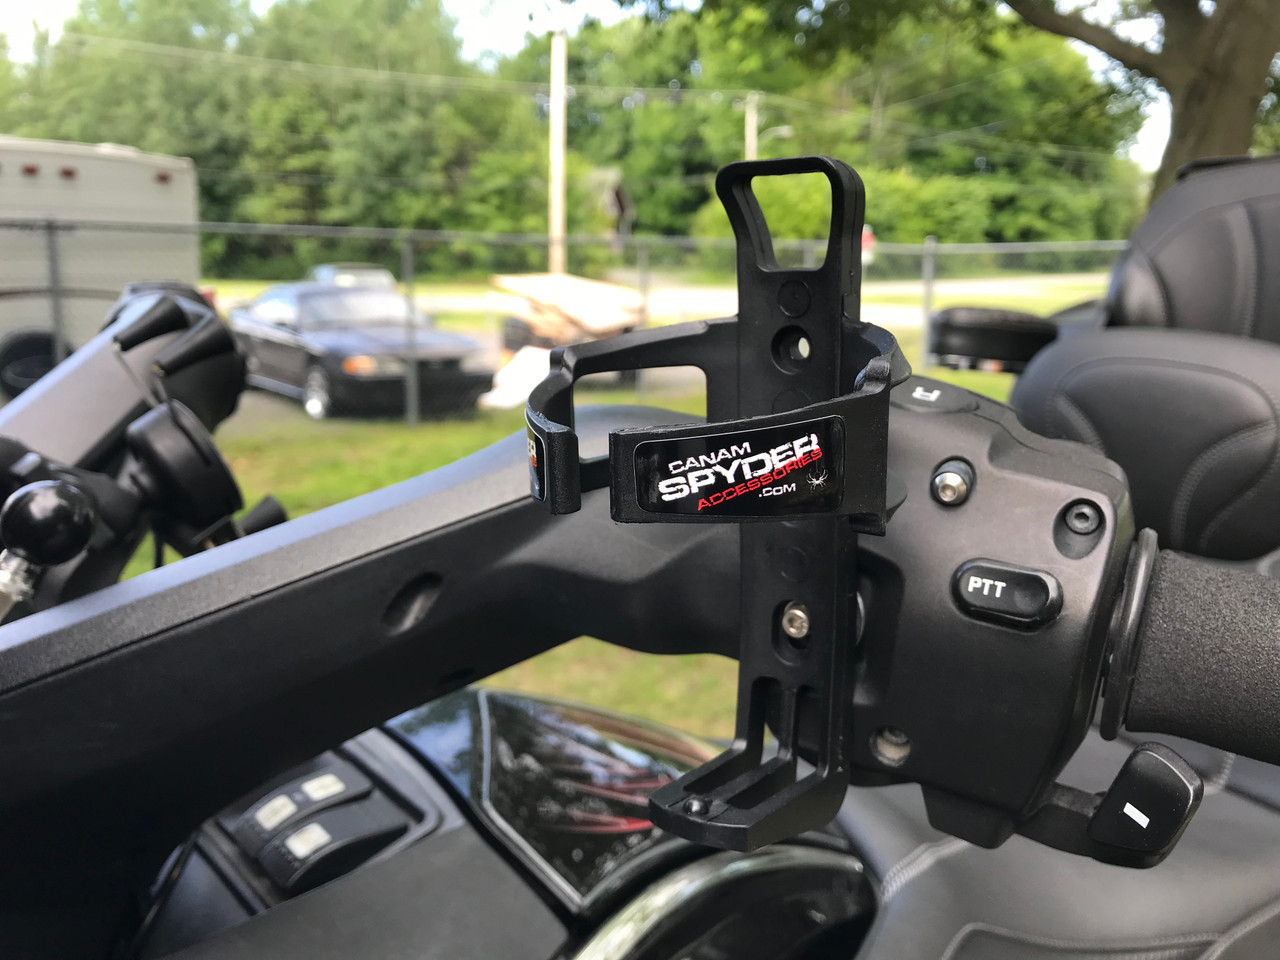 Rider's drink holder - Fits all Spyders ($10 discount)